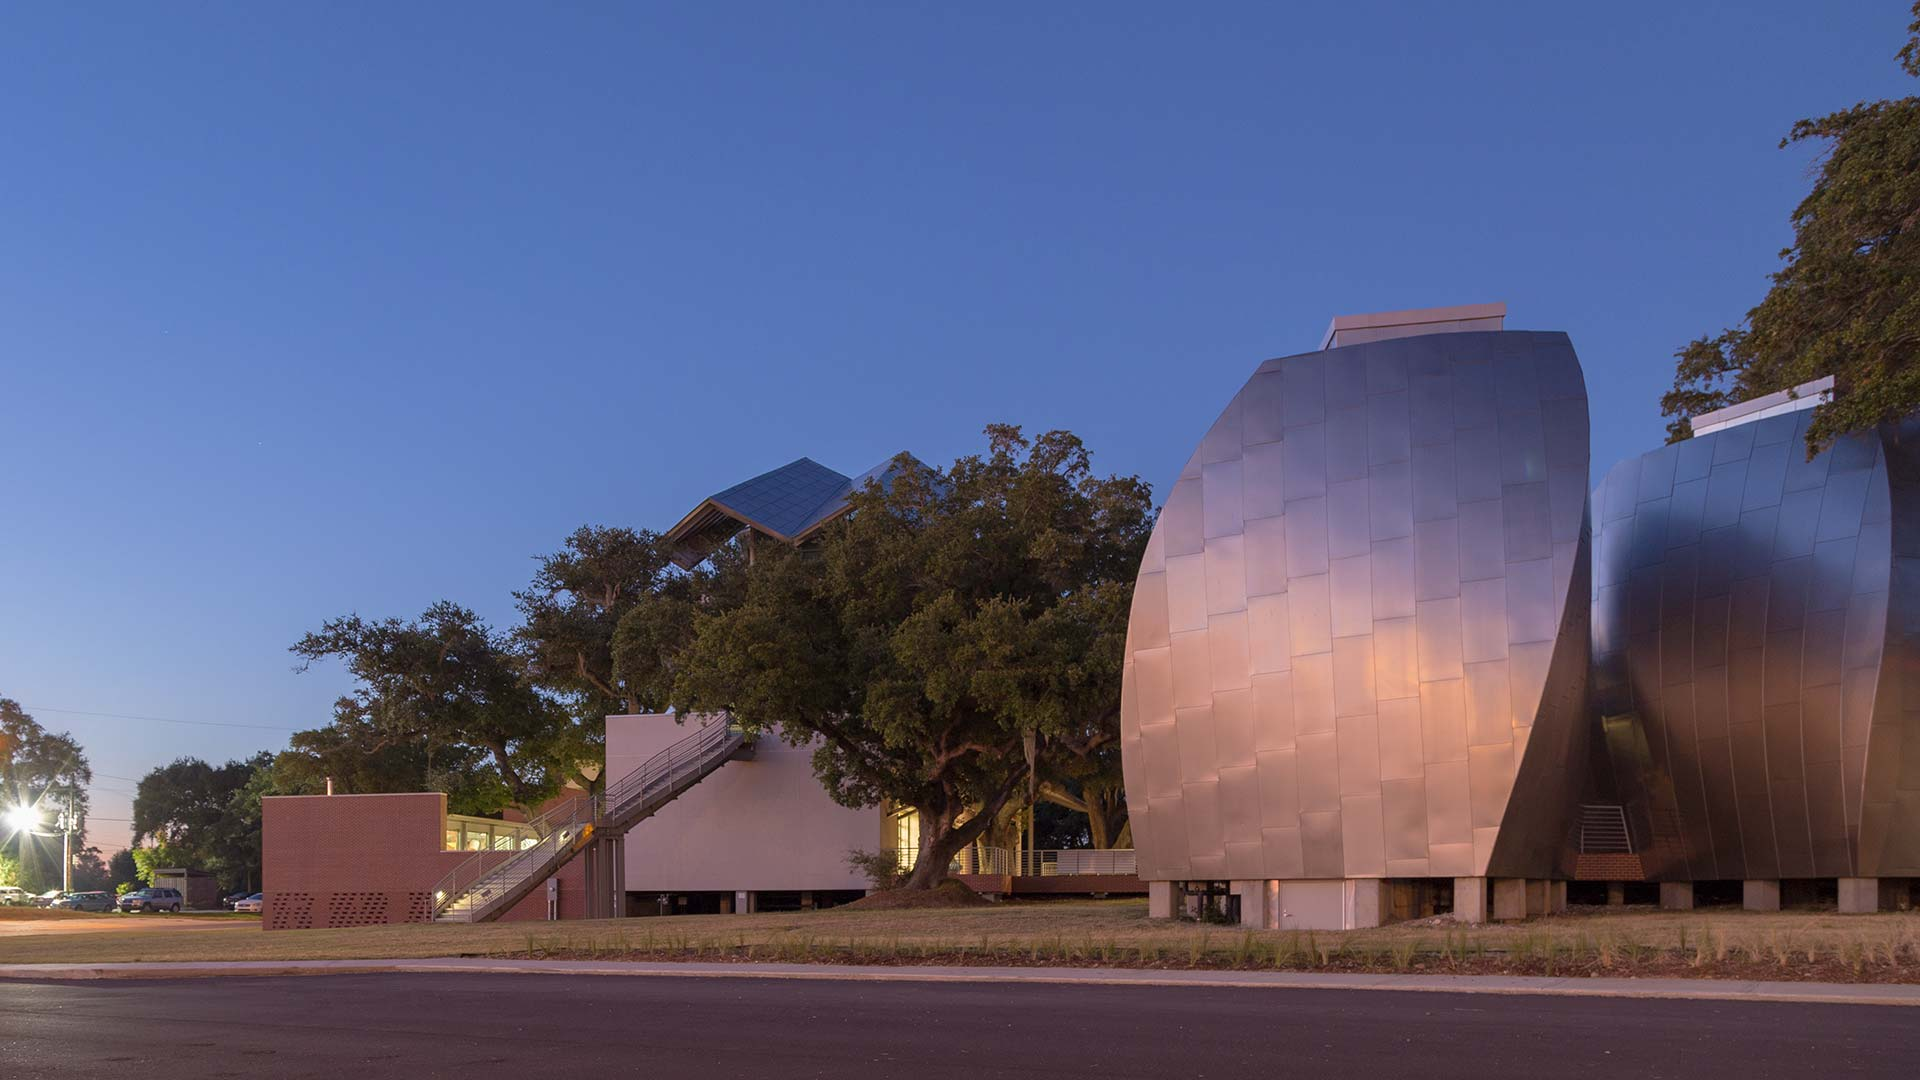 OHR O'KEEFE MUSEUM AT DUSK, FEATURING ANGEL HAIR STAINLESS STEEL AND ZEPPS TECHNOLOGY.